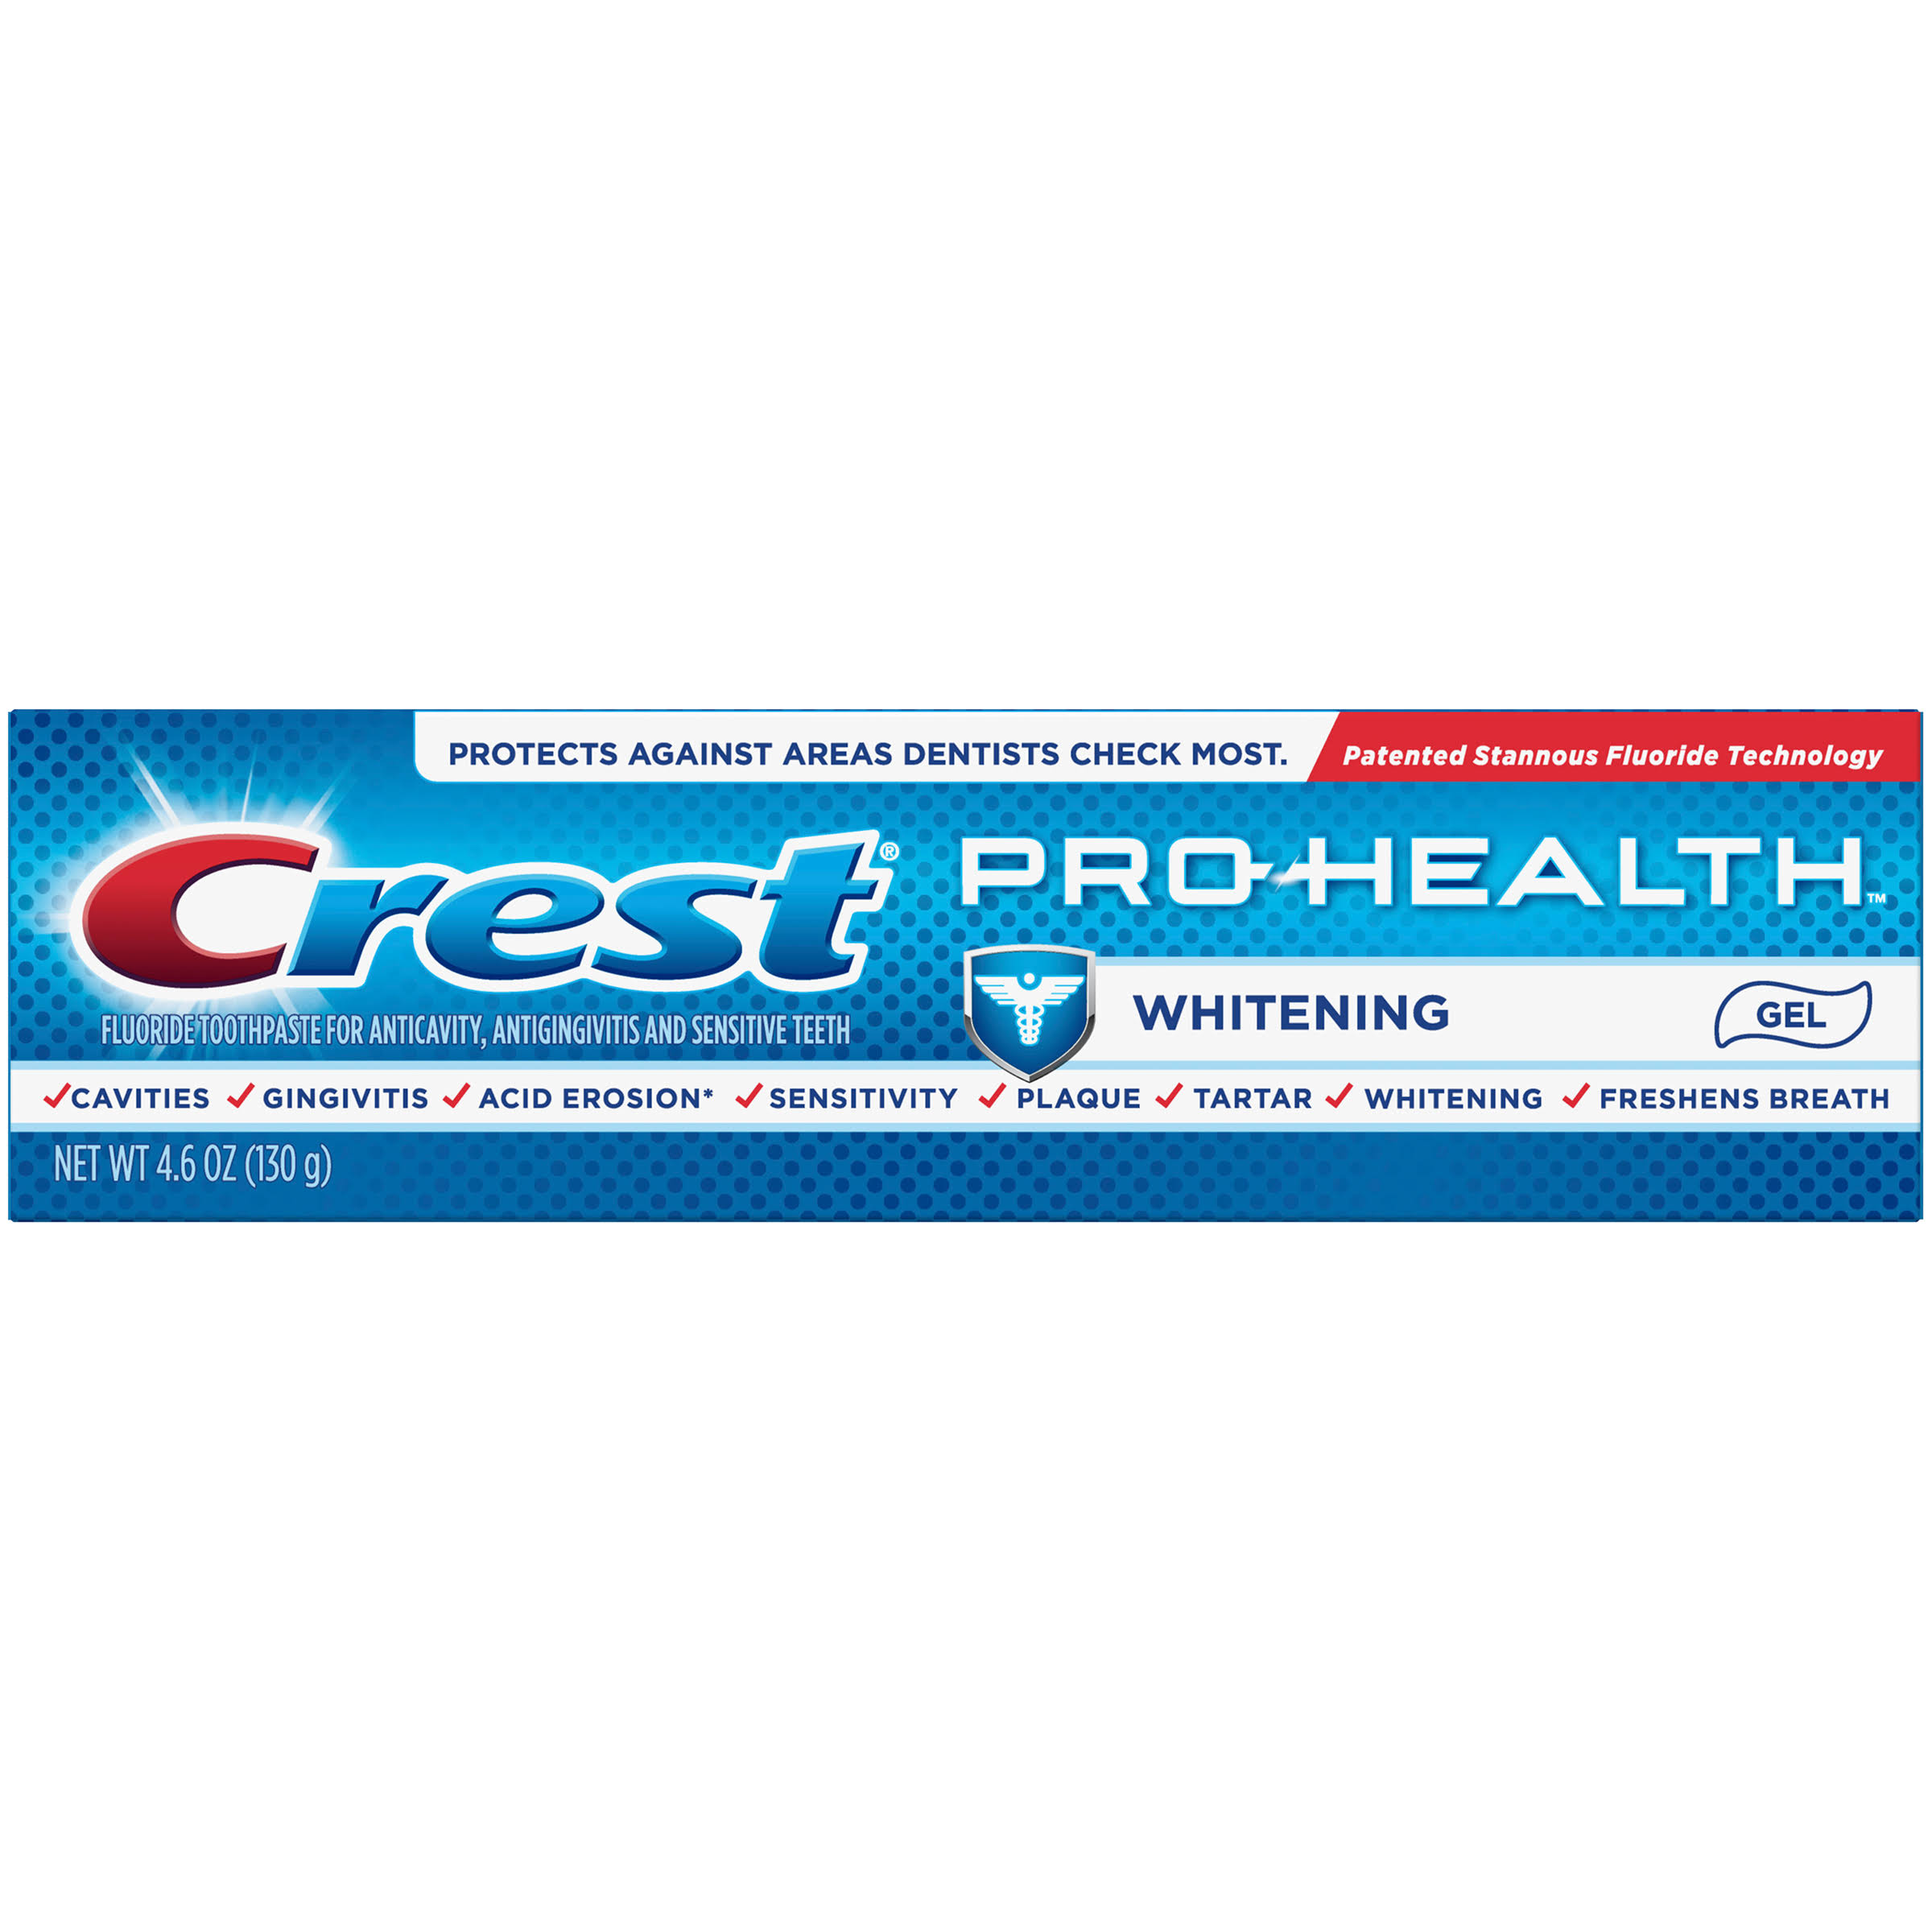 Crest Pro-Health Whitening Power Fluoride Toothpaste - 4.6oz